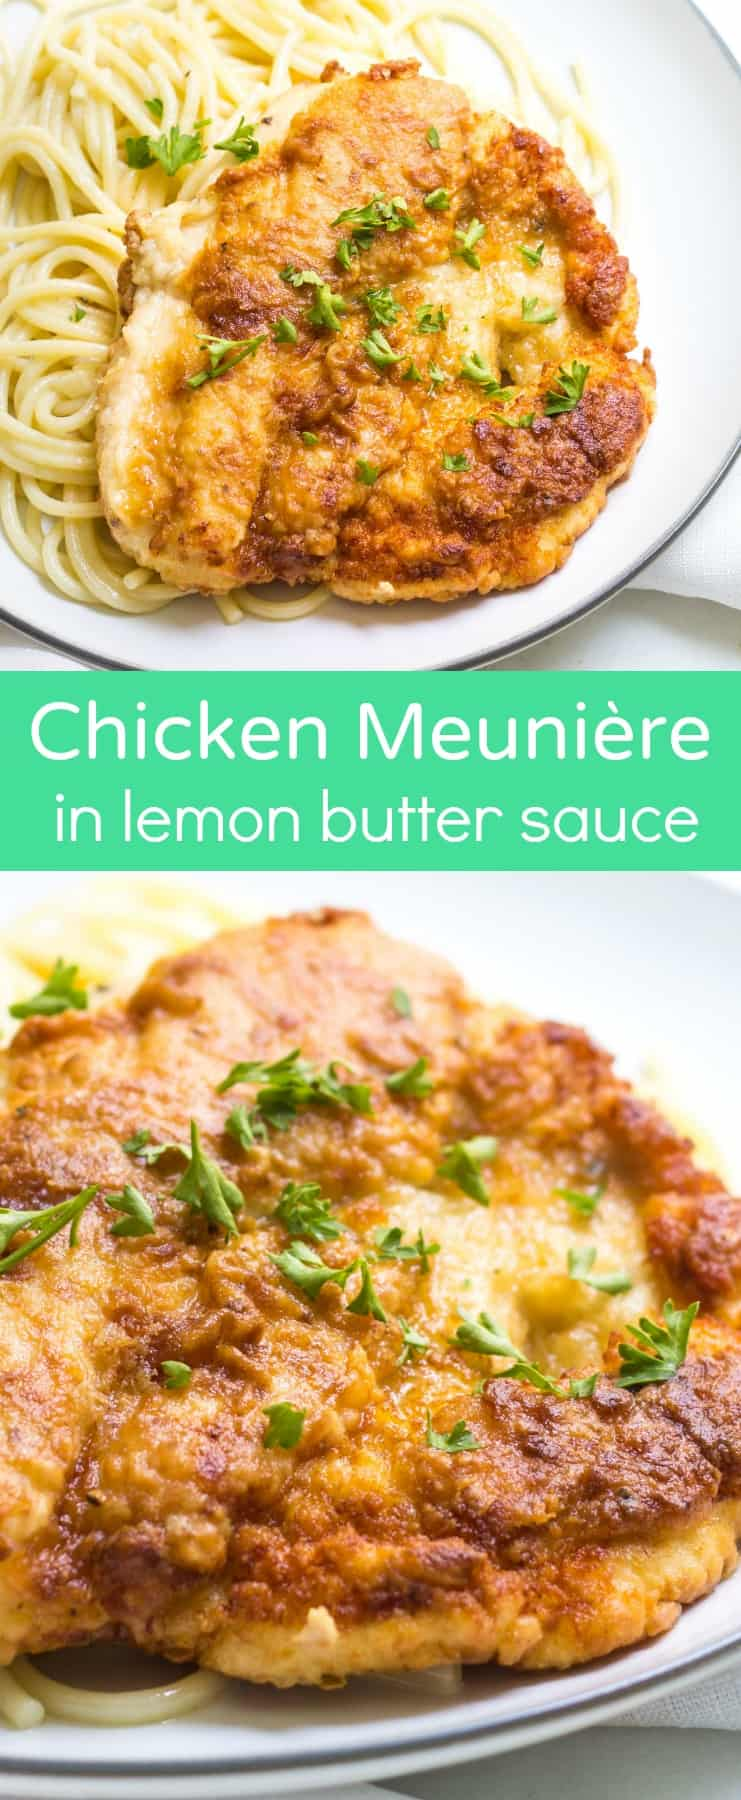 Chicken Meunière: chicken dredged in flour and fried, then topped with a lemon butter sauce. French Recipe via MonPetitFour.com